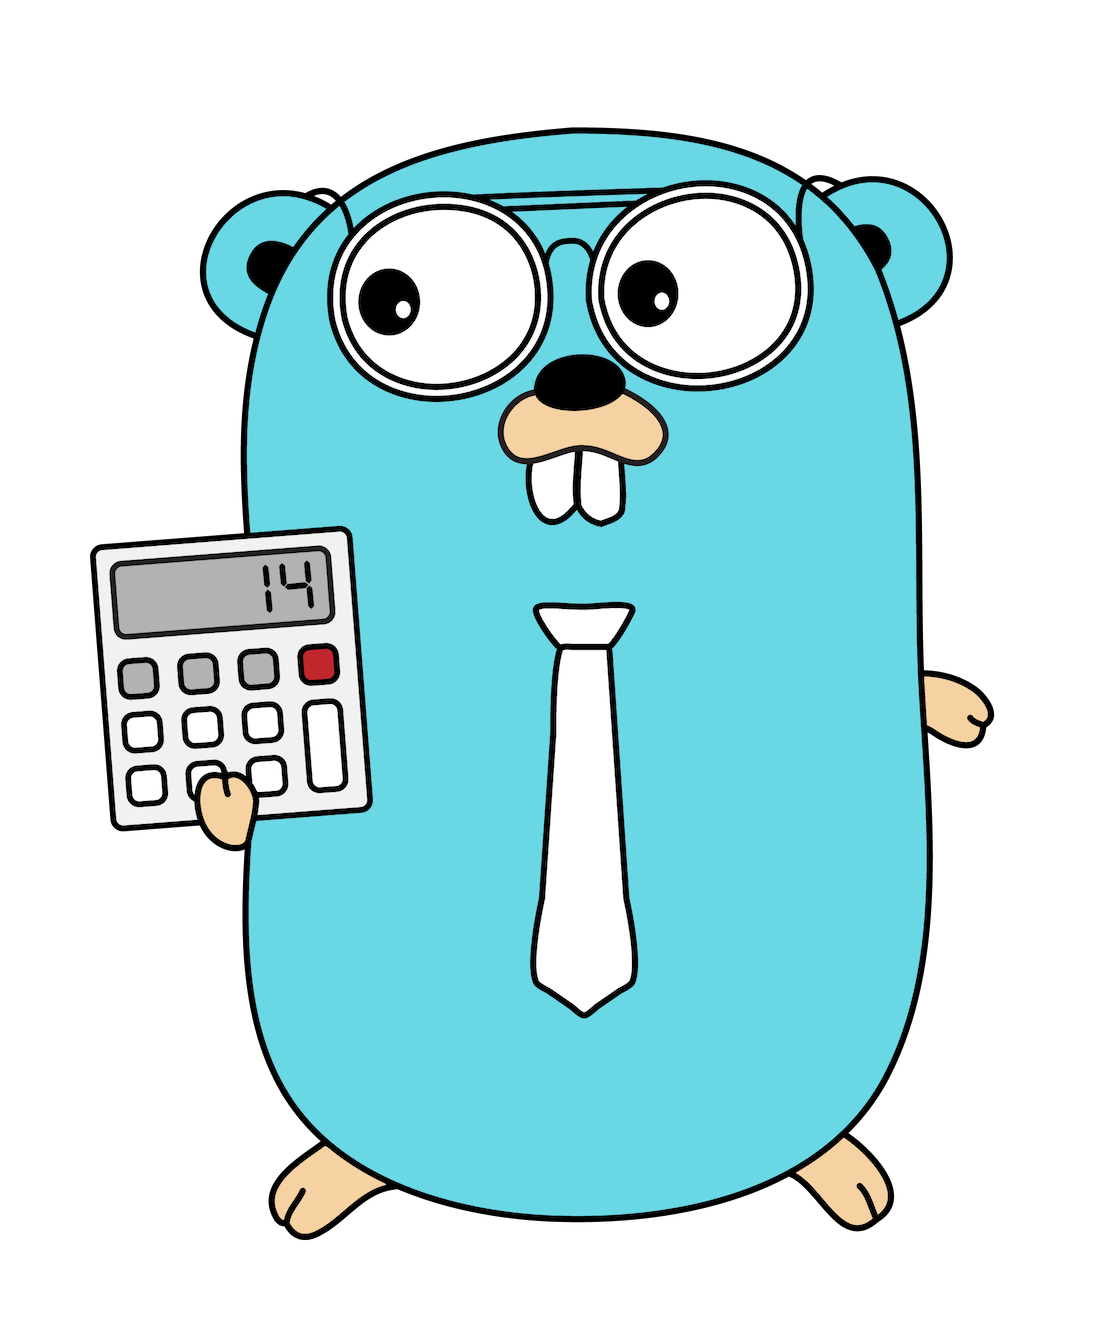 Financial clipart financial support. Github orcaman think numpy